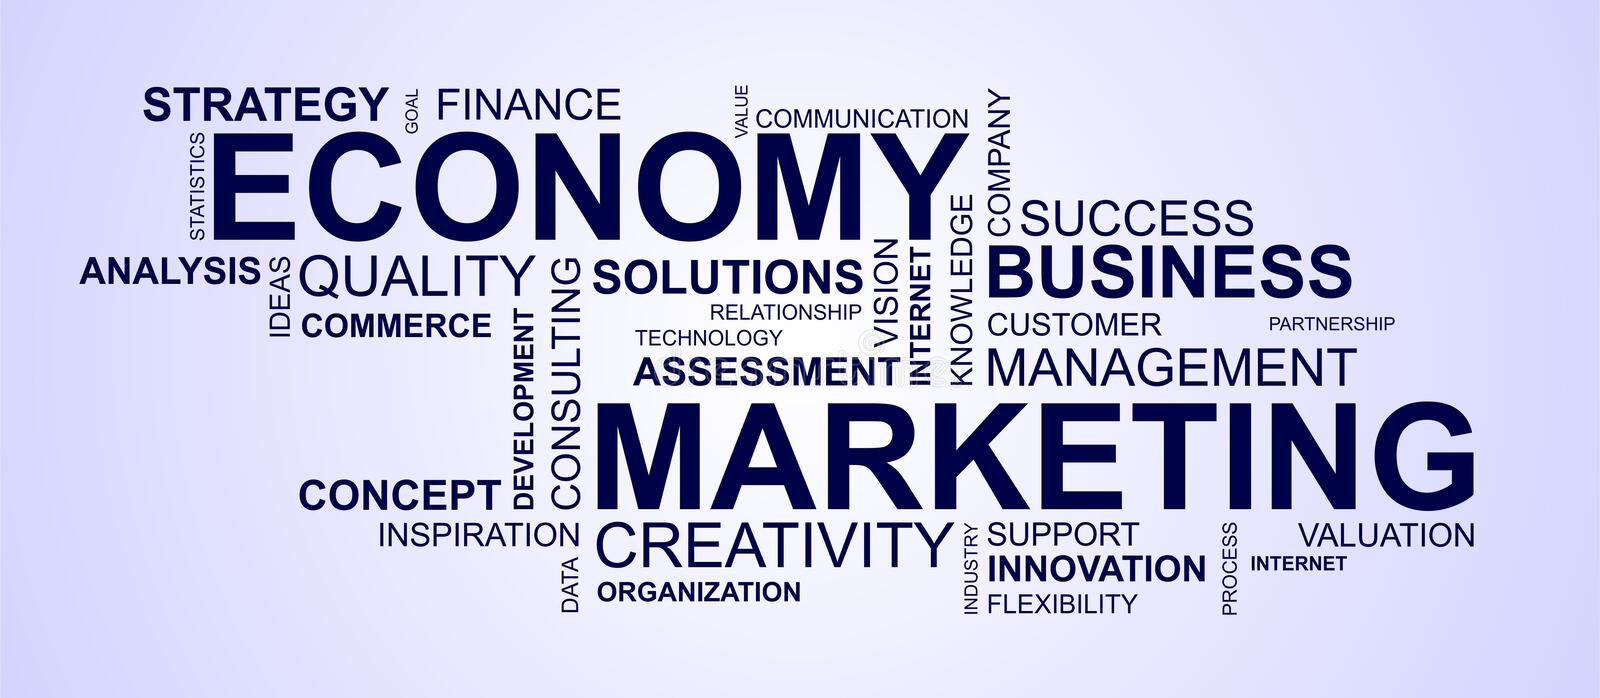 Wordcloud para o mercado e a economia fotografia de stock royalty free